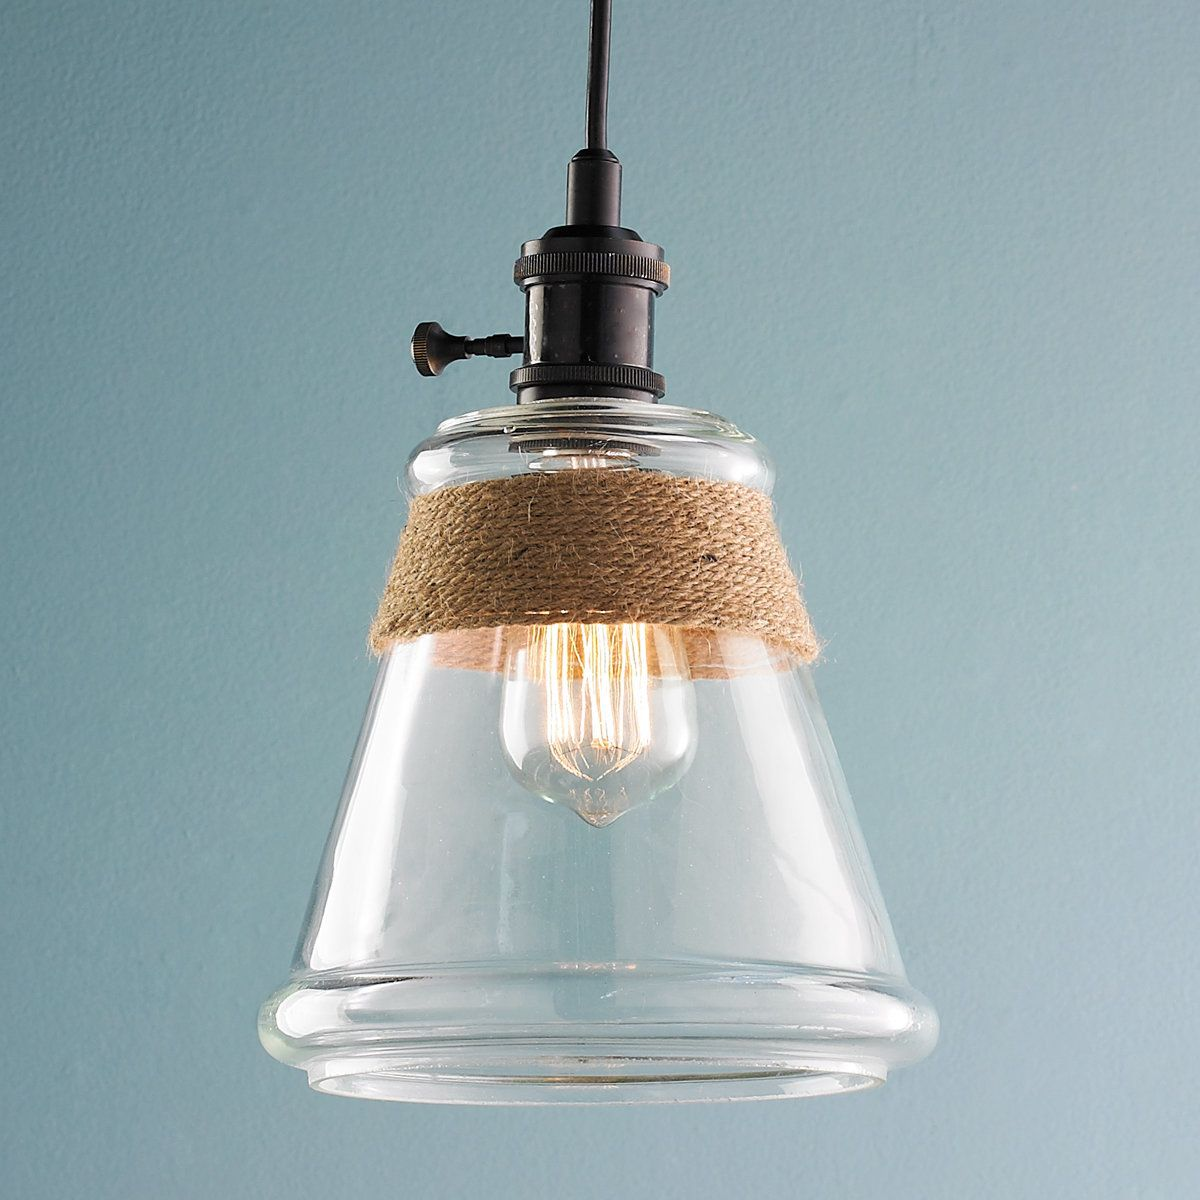 Clear glass rope pendant light pendant lighting lights and kitchens clear glass rope pendant light mozeypictures Images